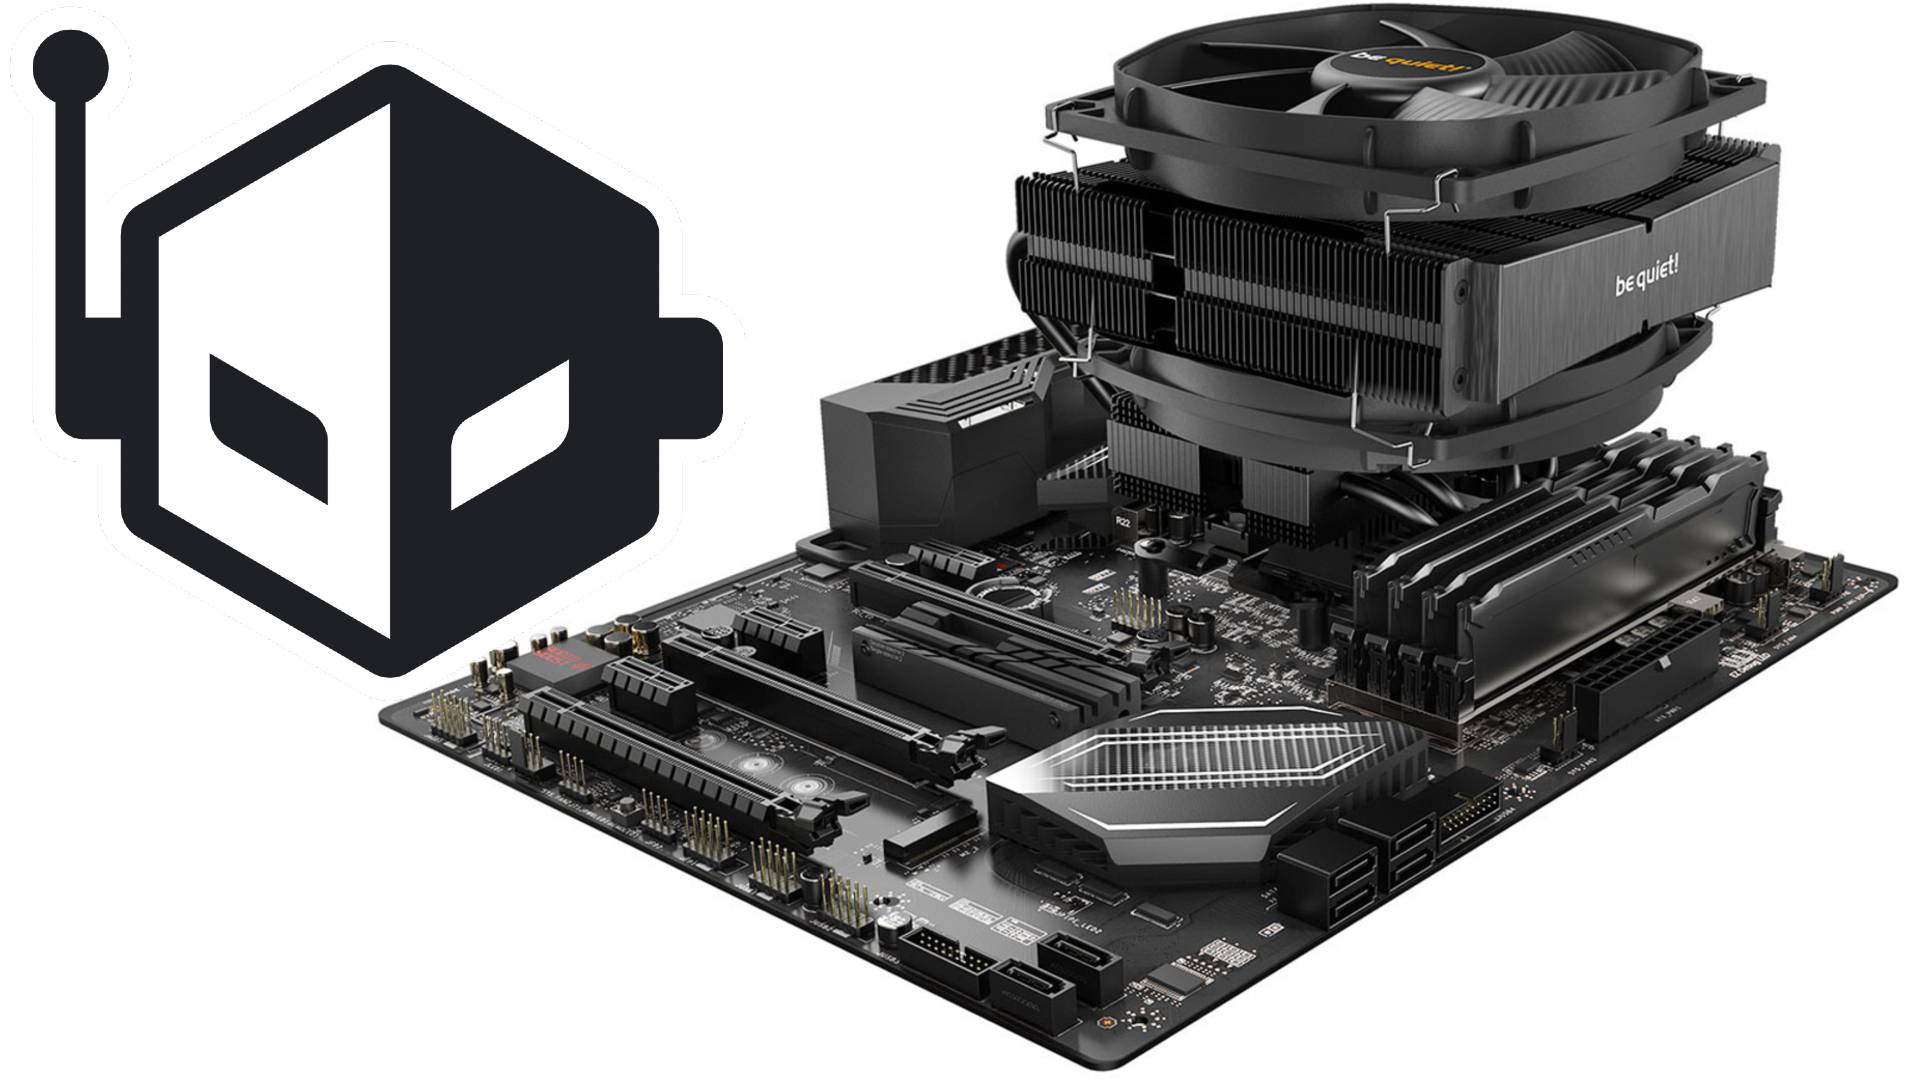 be quiet! Announces the Dark Rock TF 2 CPU Cooler with a Top-flow Design